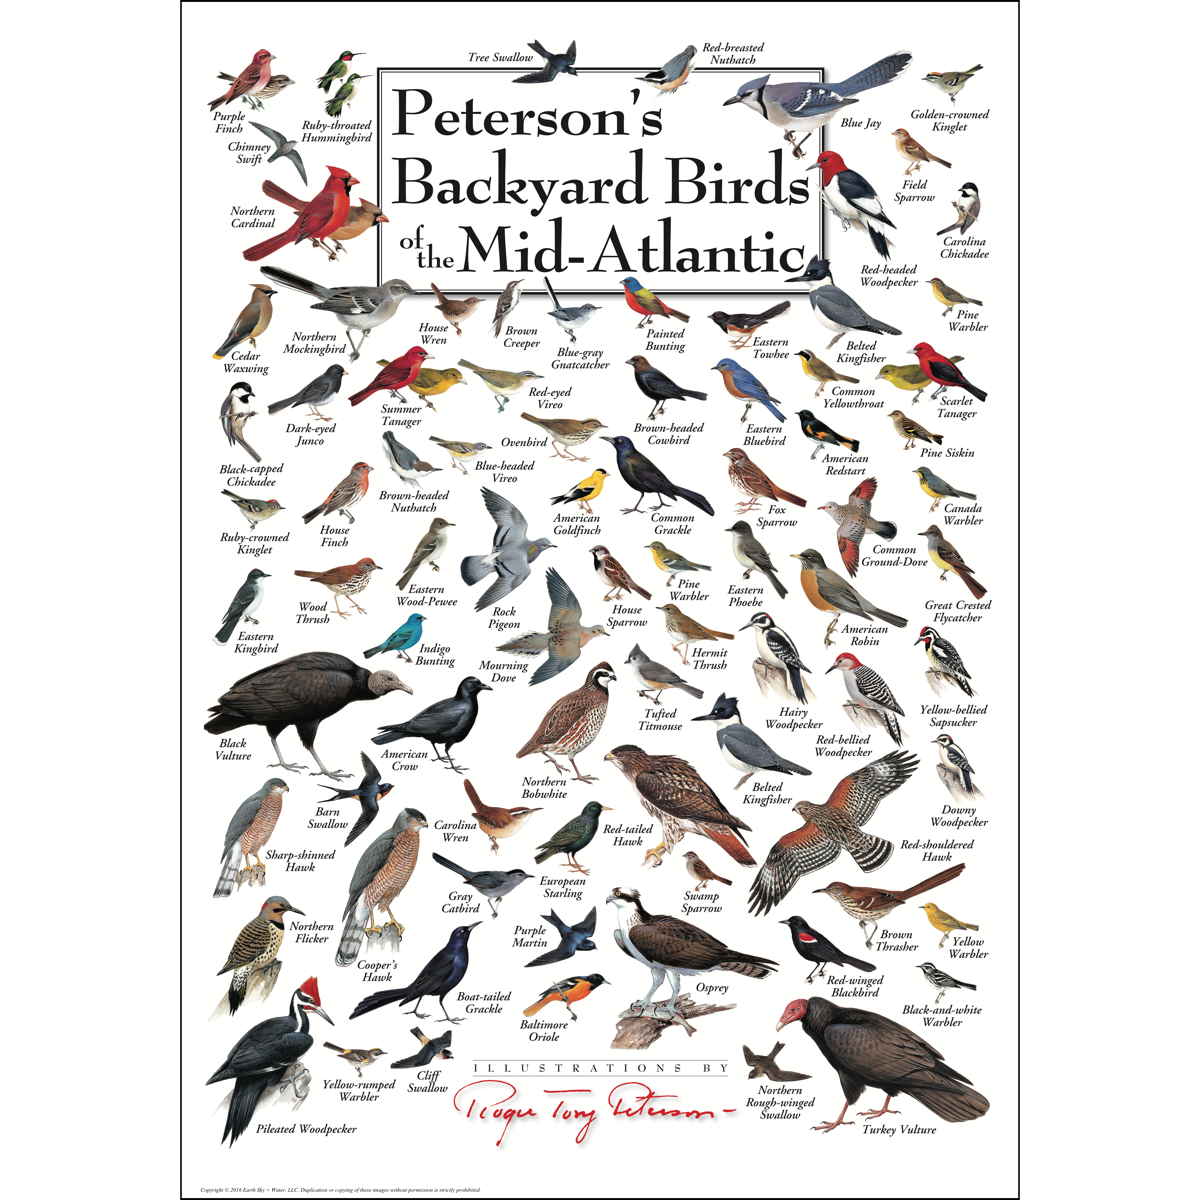 Peterson's Backyard Birds of the Mid-Atlantic - Poster ...